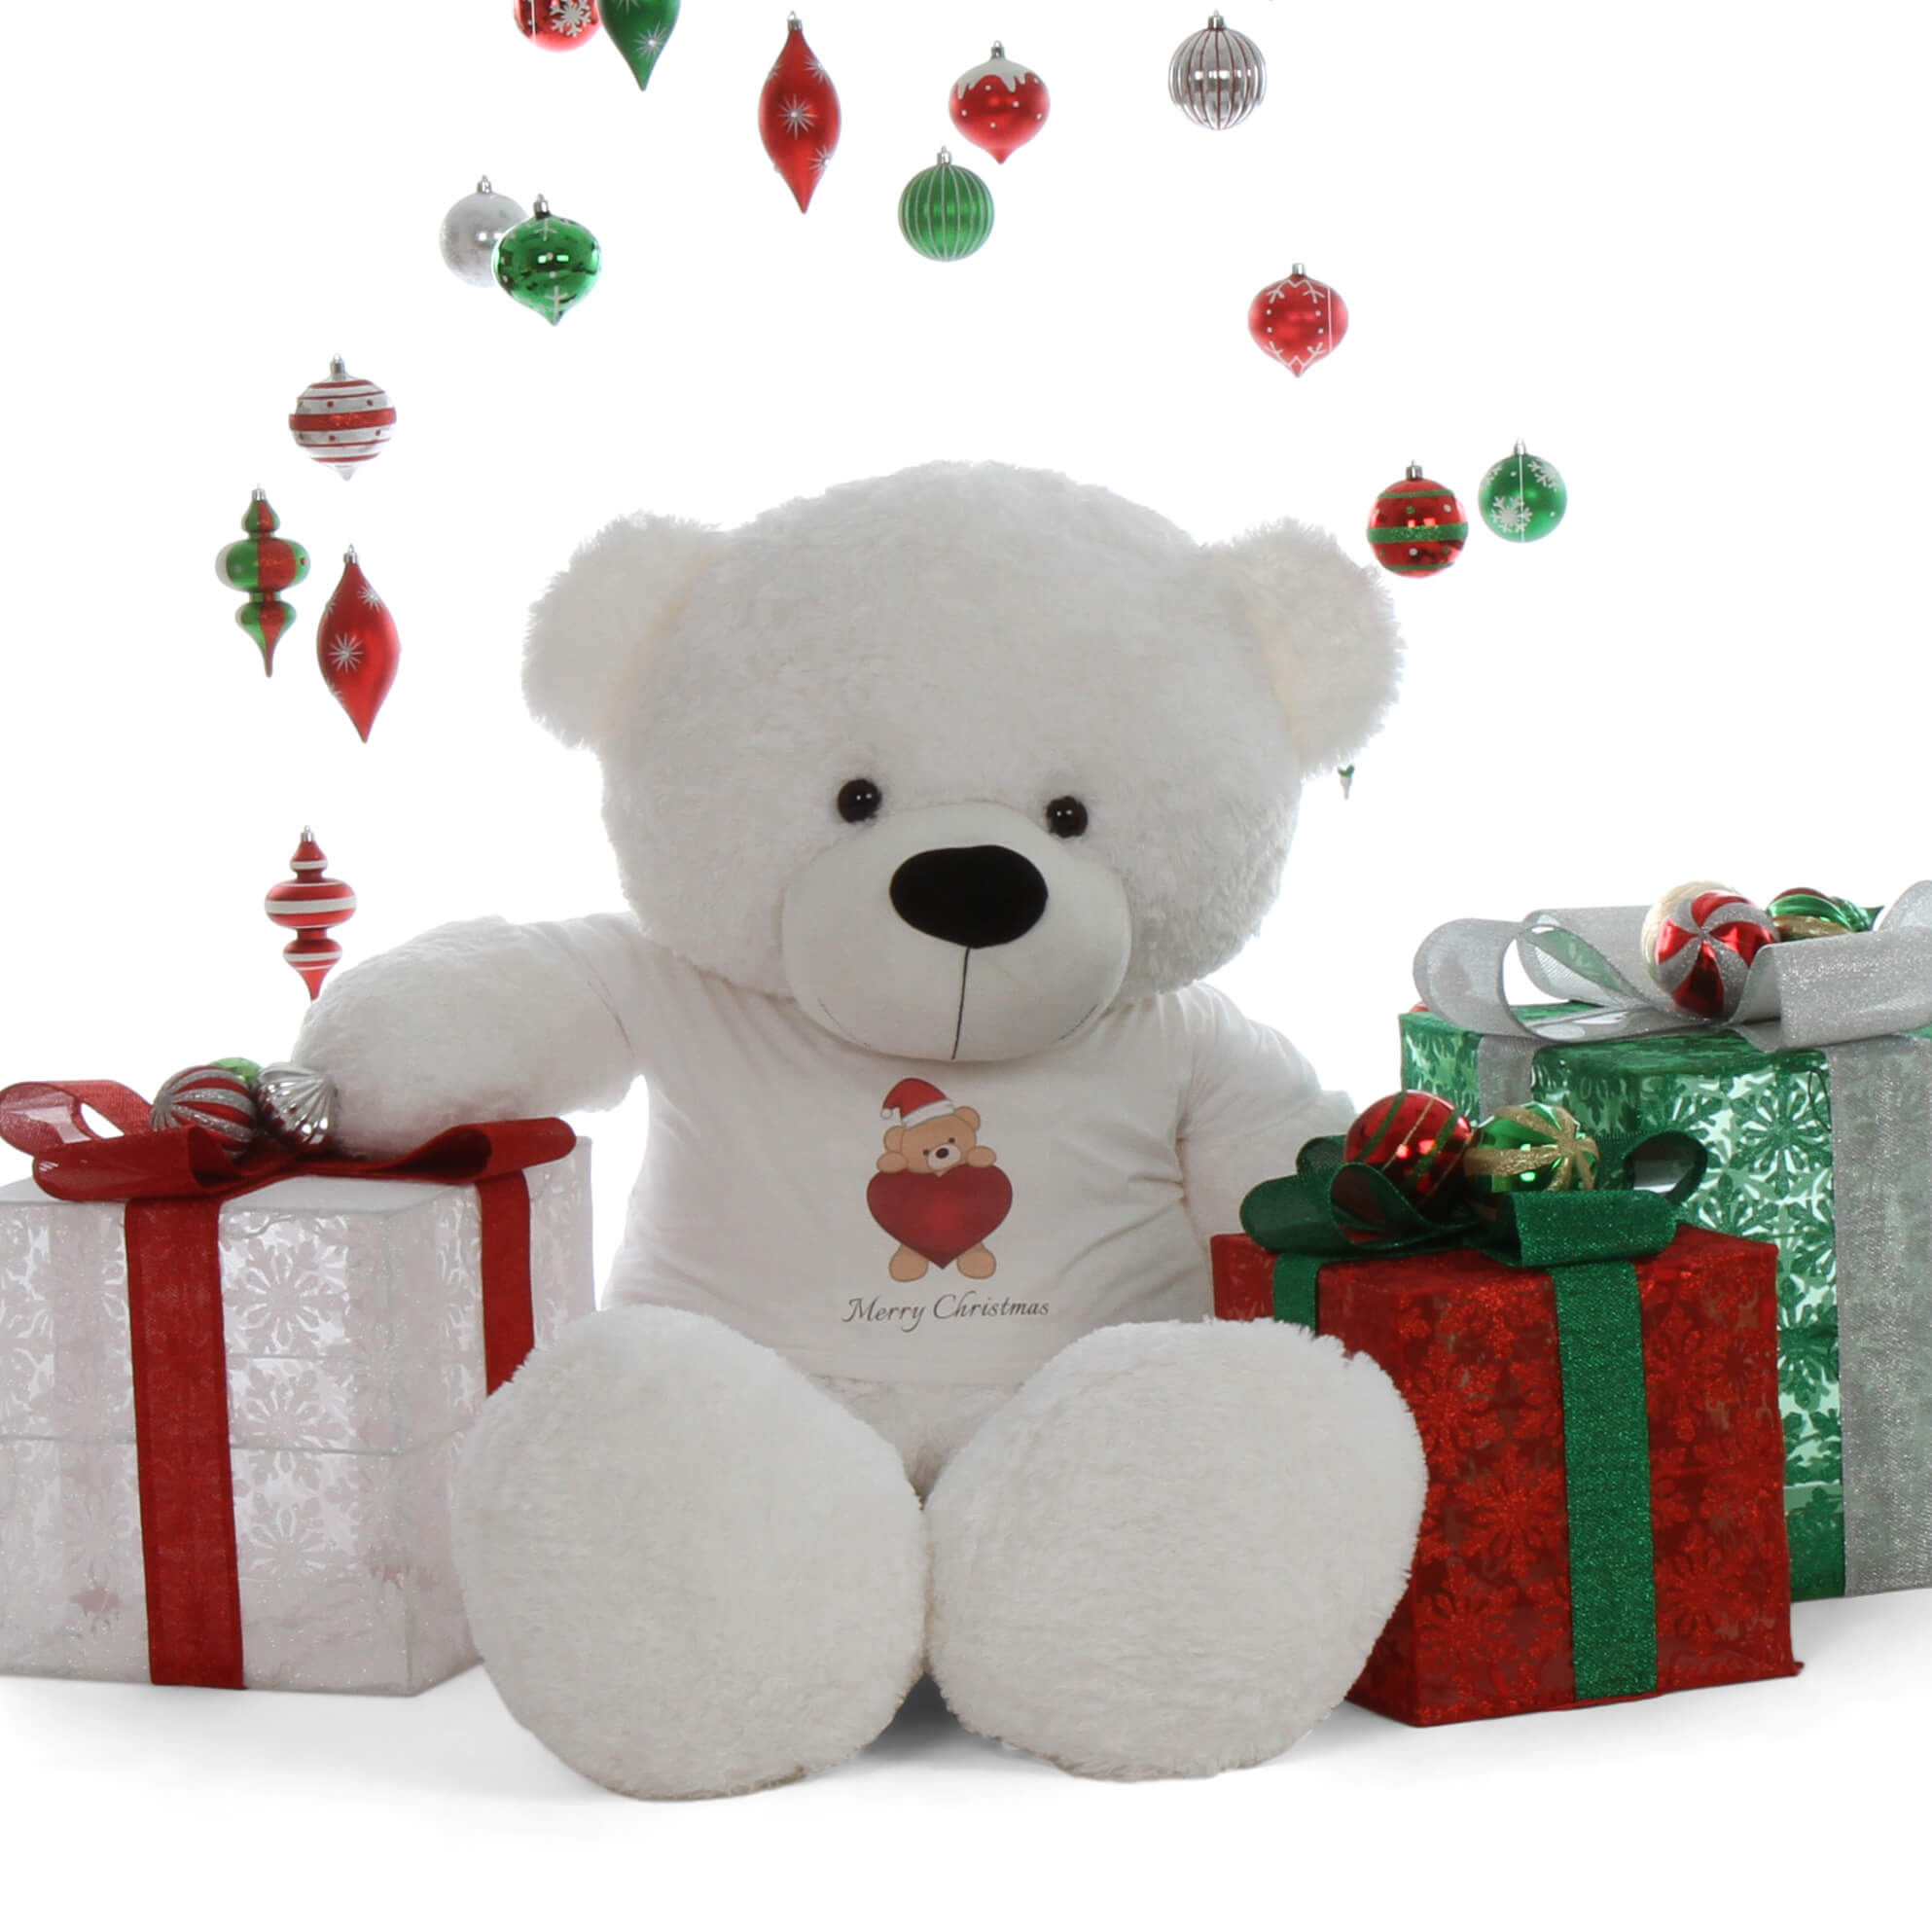 merry-christmas-5ft-life-size-white-teddy-bear-coco-cuddles-1.jpg